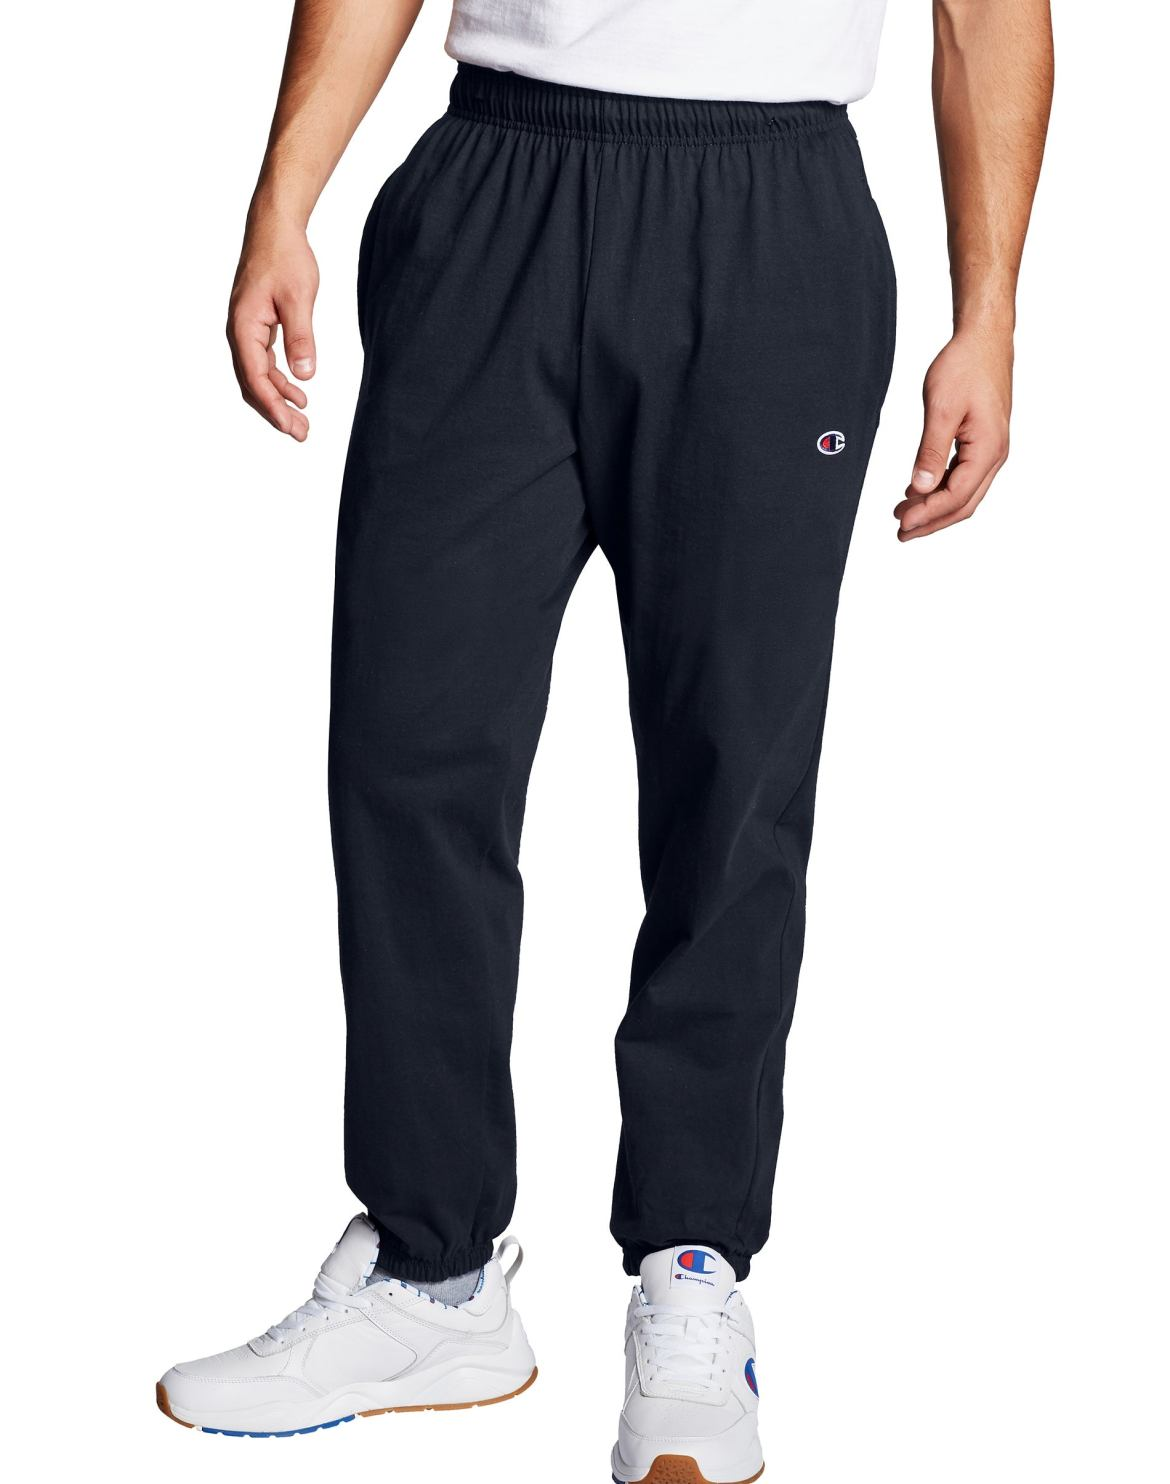 Men's Athletics Closed Bottom Navy Jersey Pants by Champion.